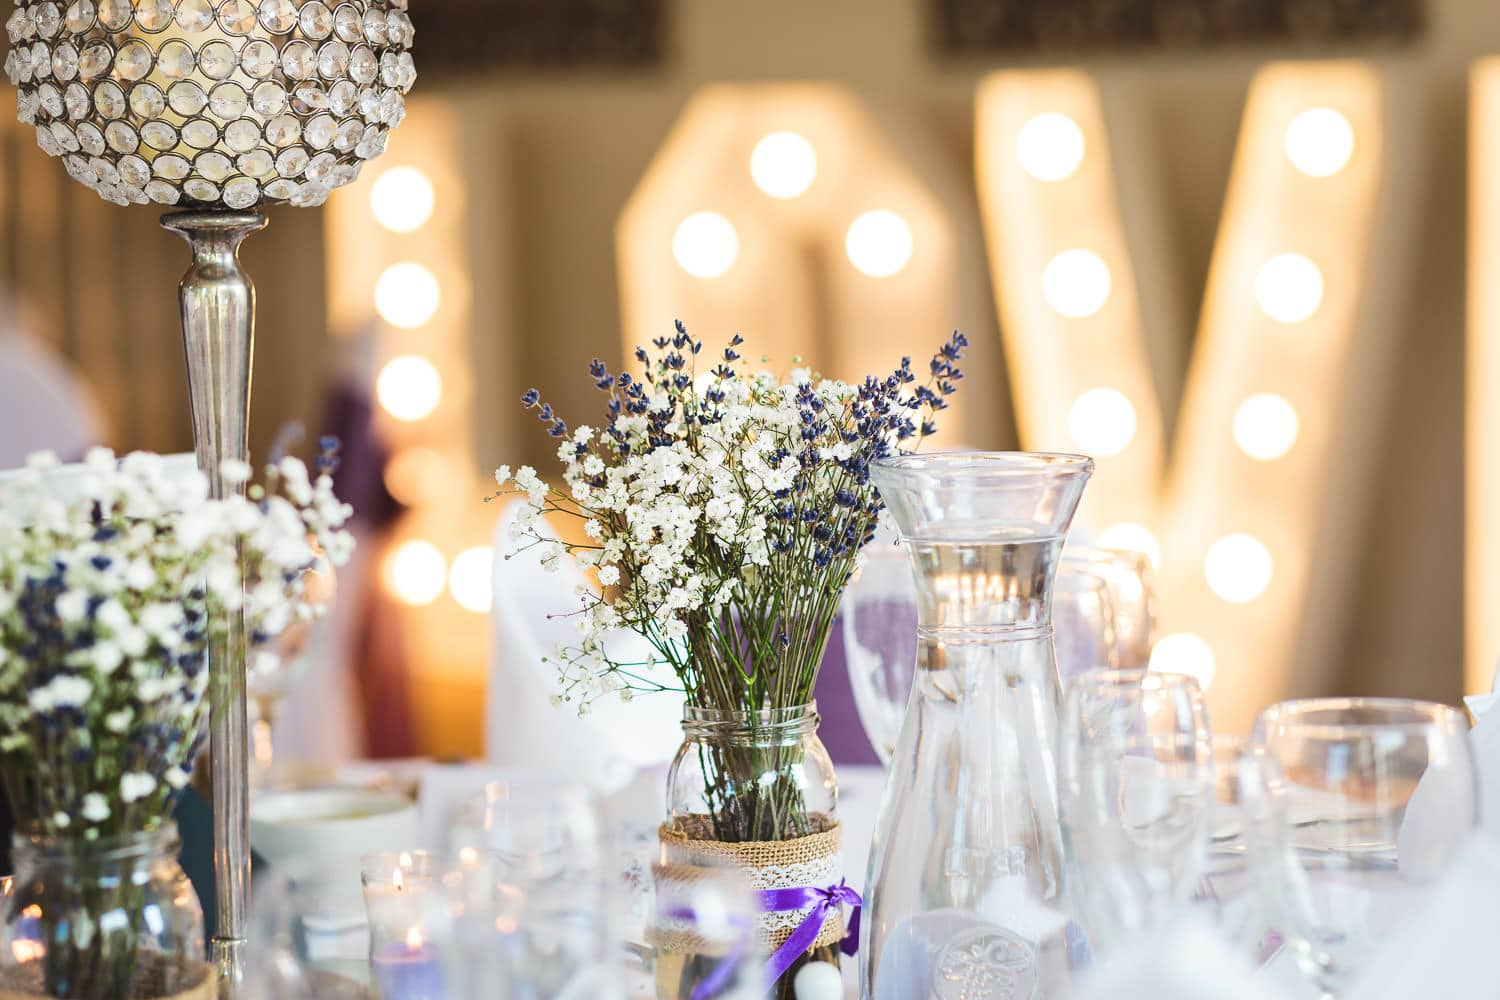 table decor and flowers at warwick house wedding in southam